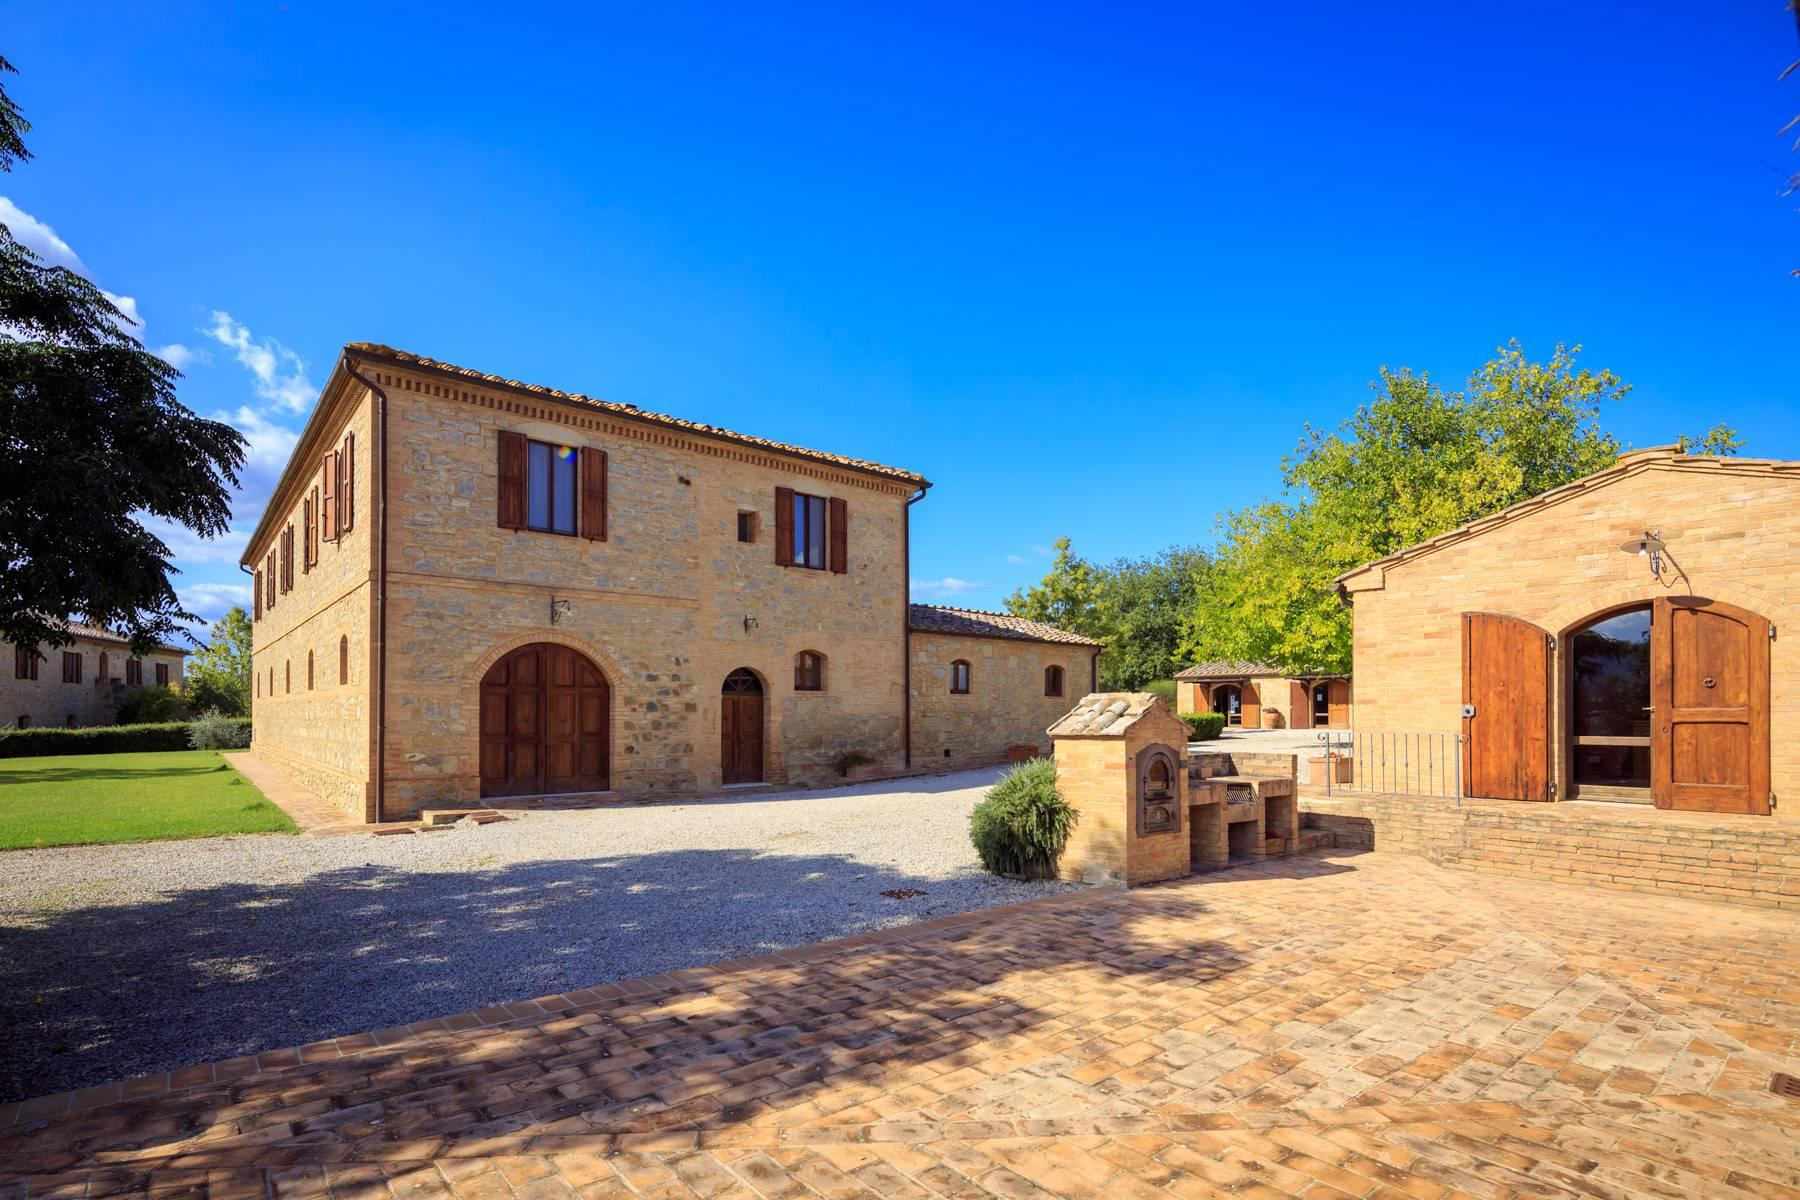 Exclusive property close to Siena - 6